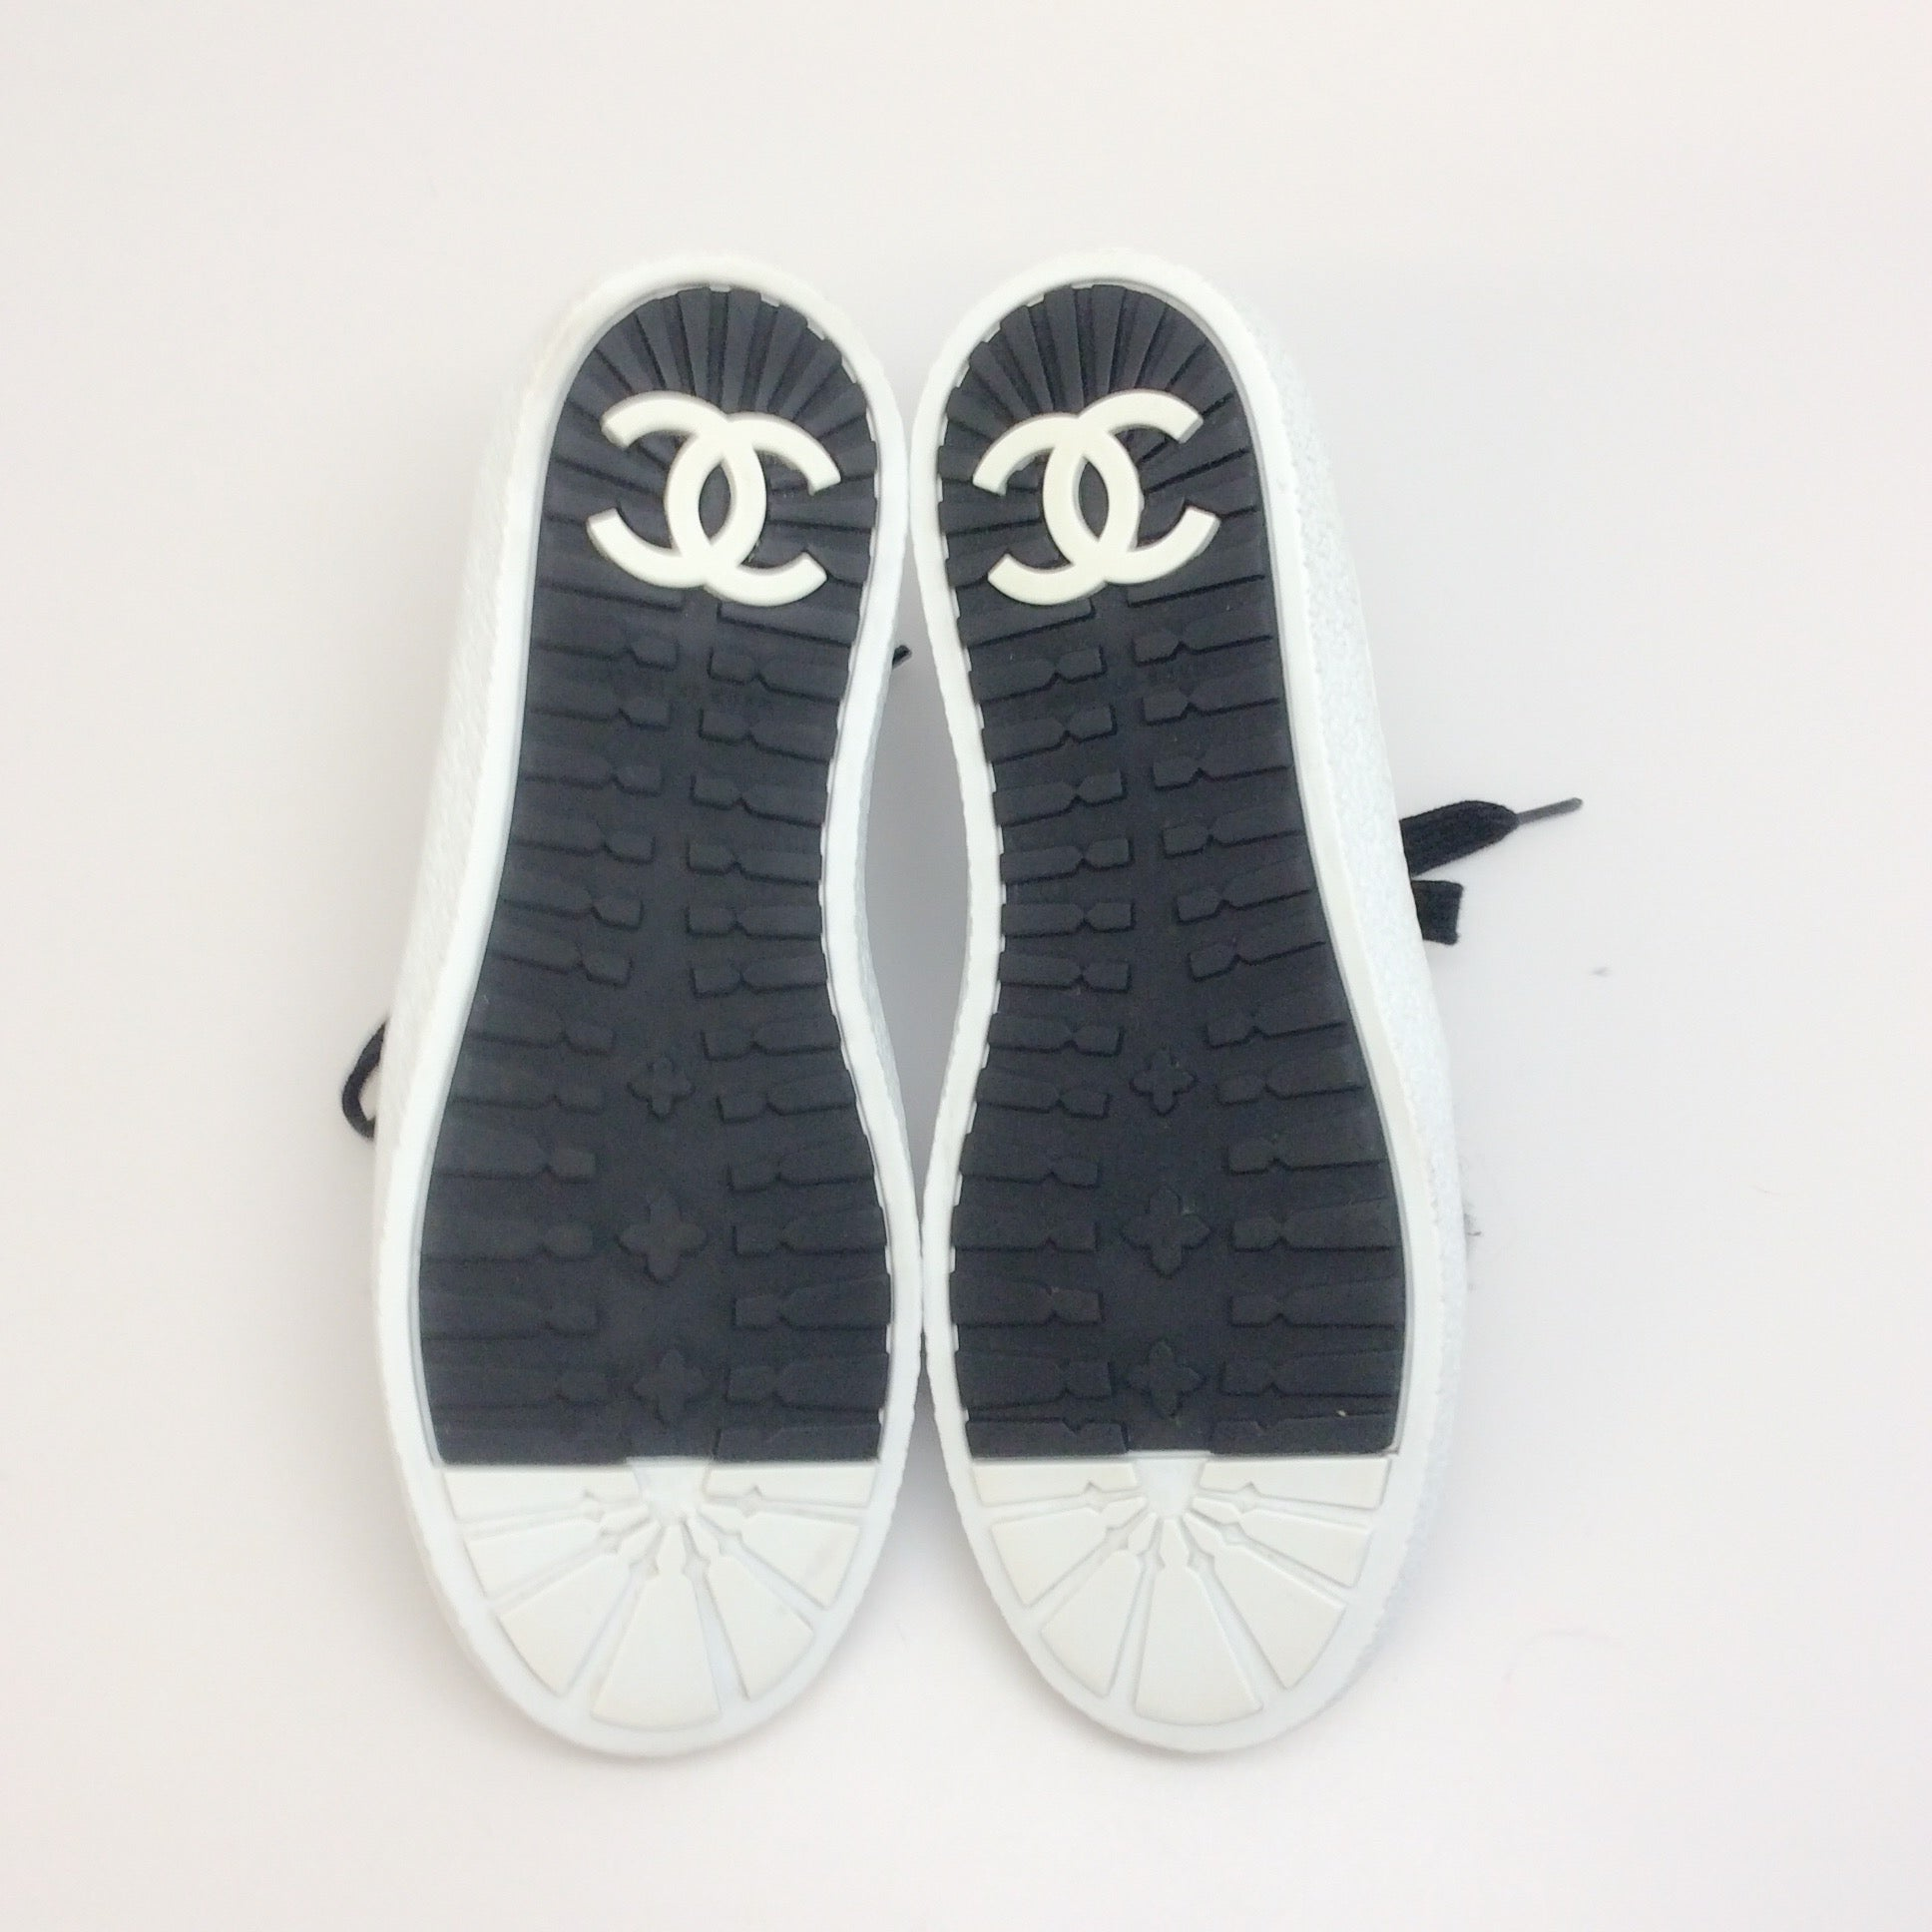 Chanel Black Tweed Boucle / Suede Sneakers